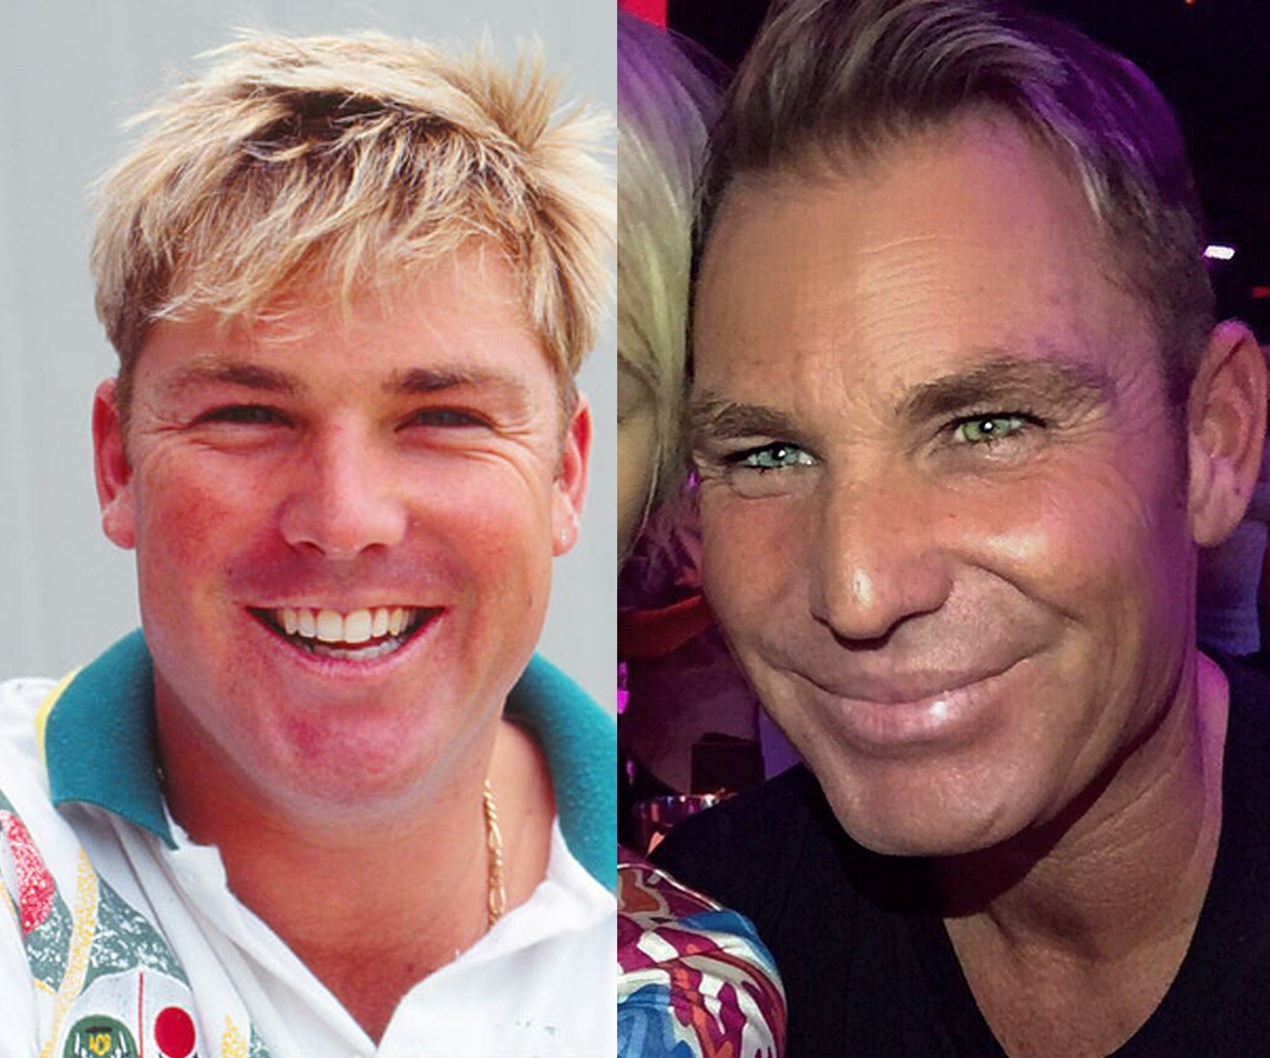 'Plastic' Shane Warne faces surgery rumours